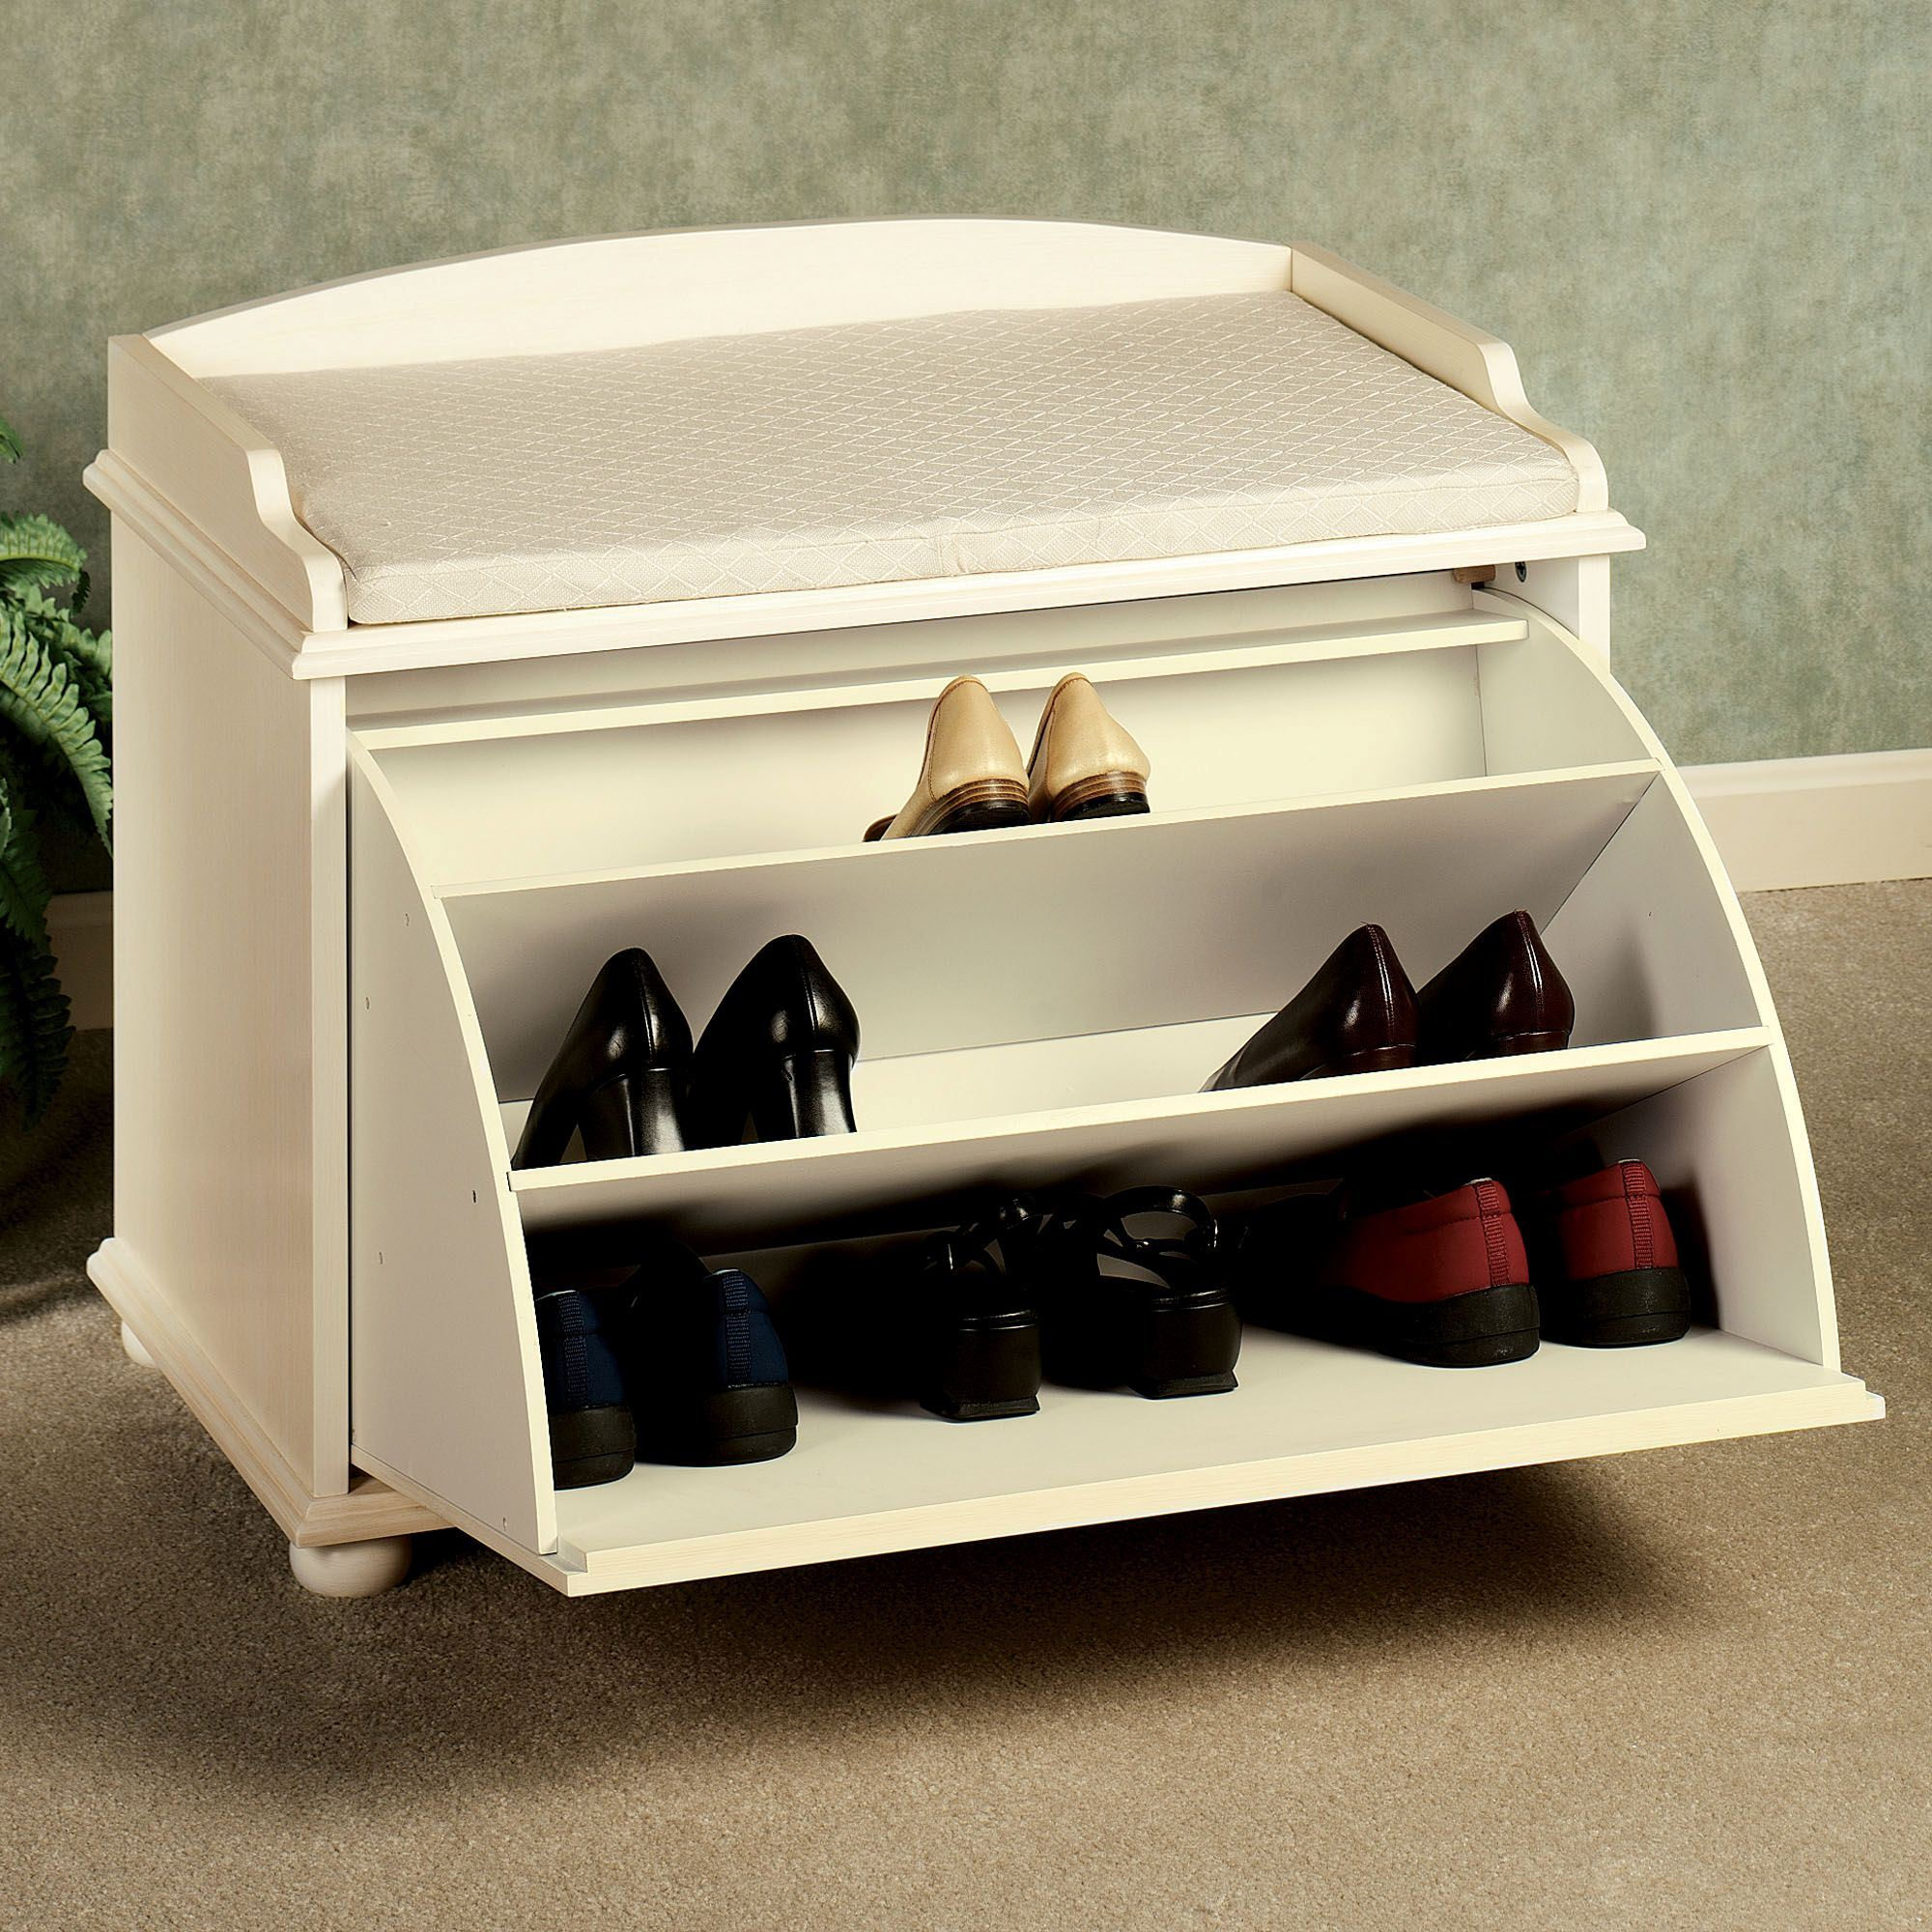 Kitchen Cabinet Solutions Amelia Pale Yellow Shoe Storage Bench